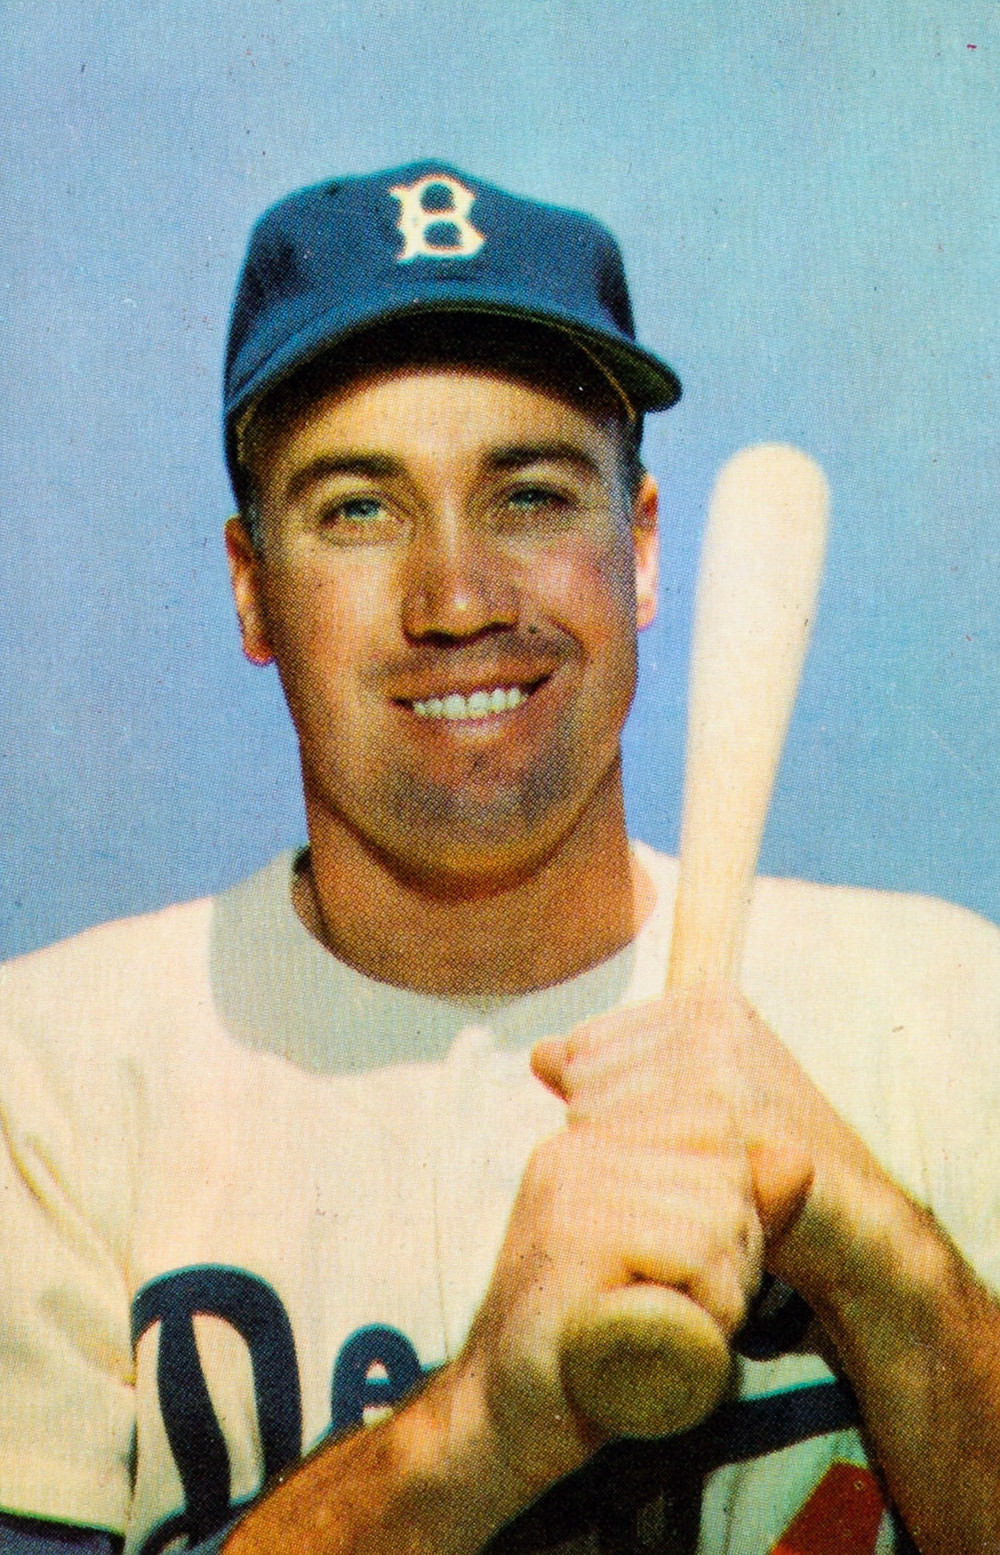 Duke Snider, 1953. Public Domain.